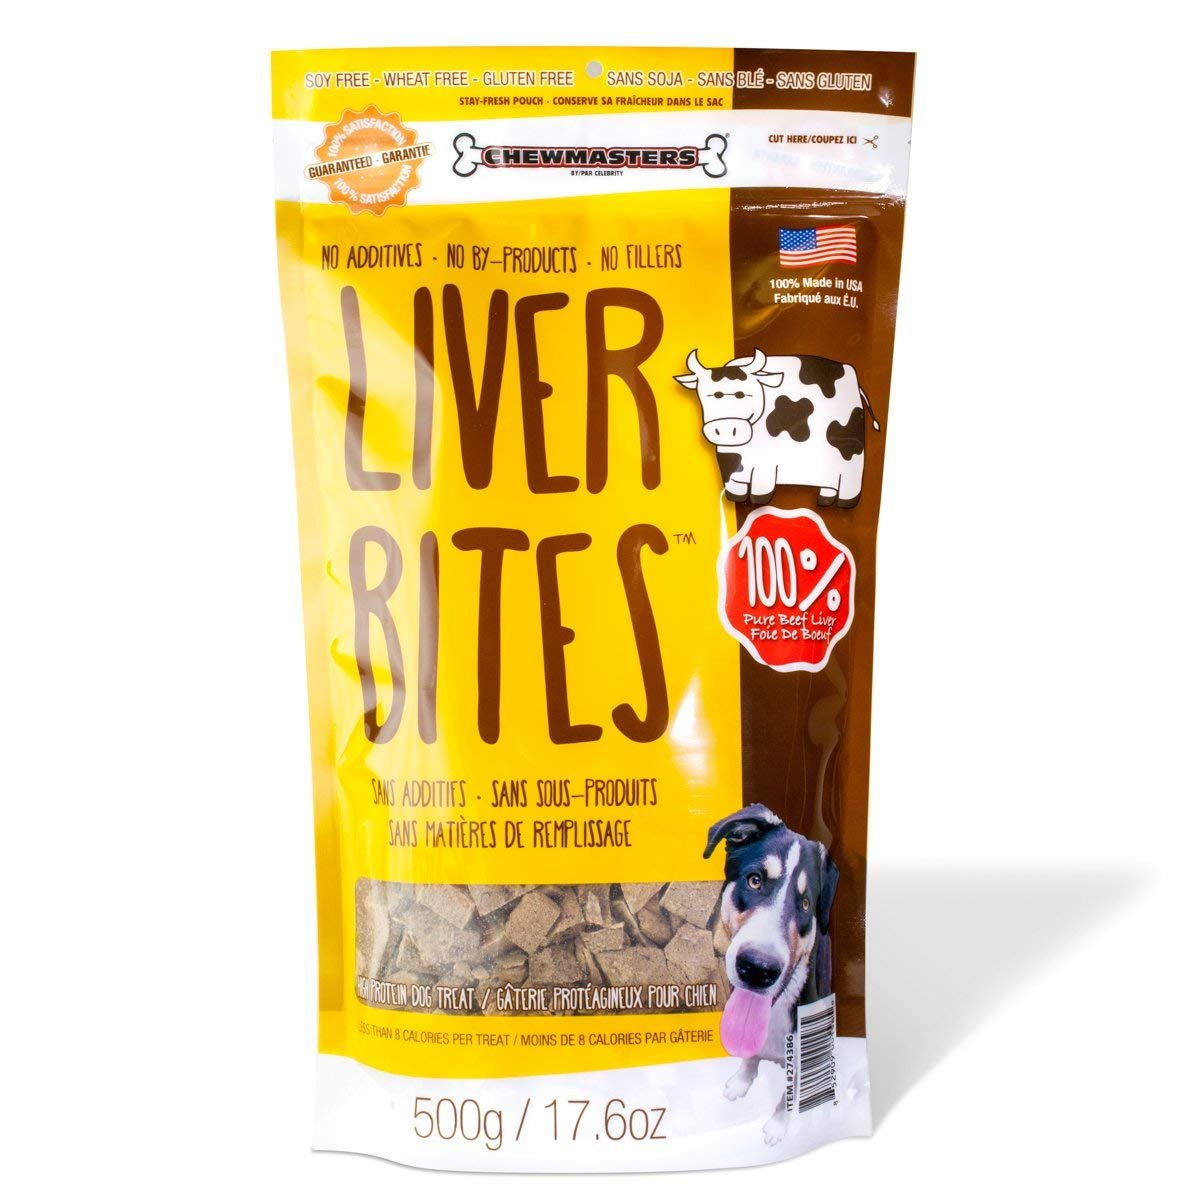 Chewmasters Beef Liver Bites Freeze Dried Dog Treats Bag, 17.6 oz (2 Packs)